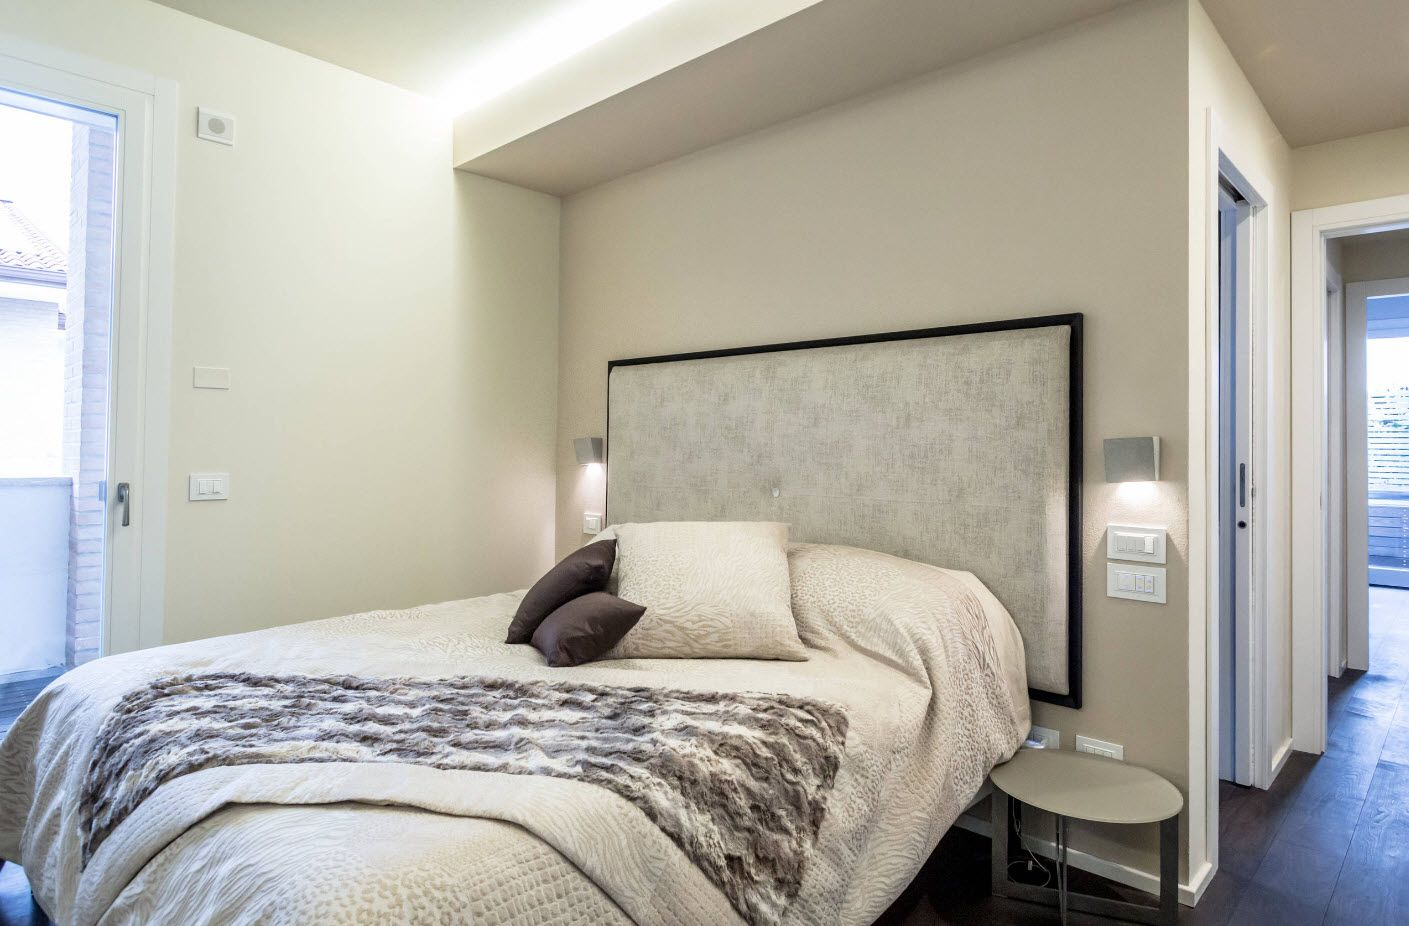 uphosltered headboard contributes to atmosphere